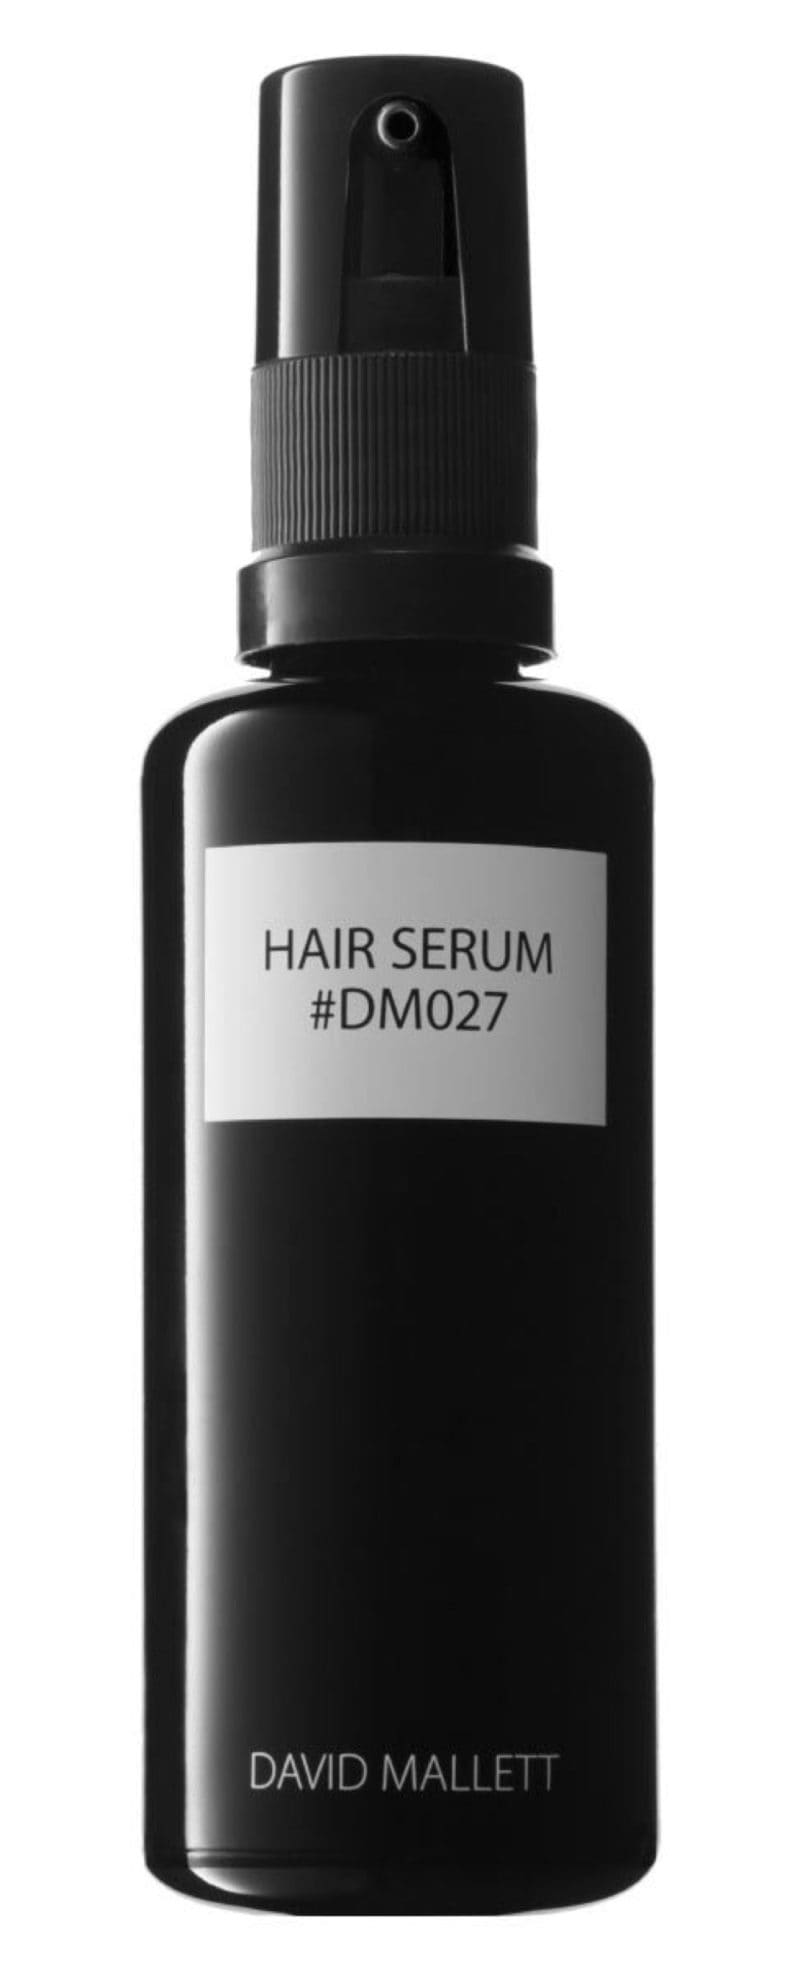 olio-per-capelli-come-si-usa-e-per-chi-e-adatto-David Mallett_Hair Serum #DM027_preview